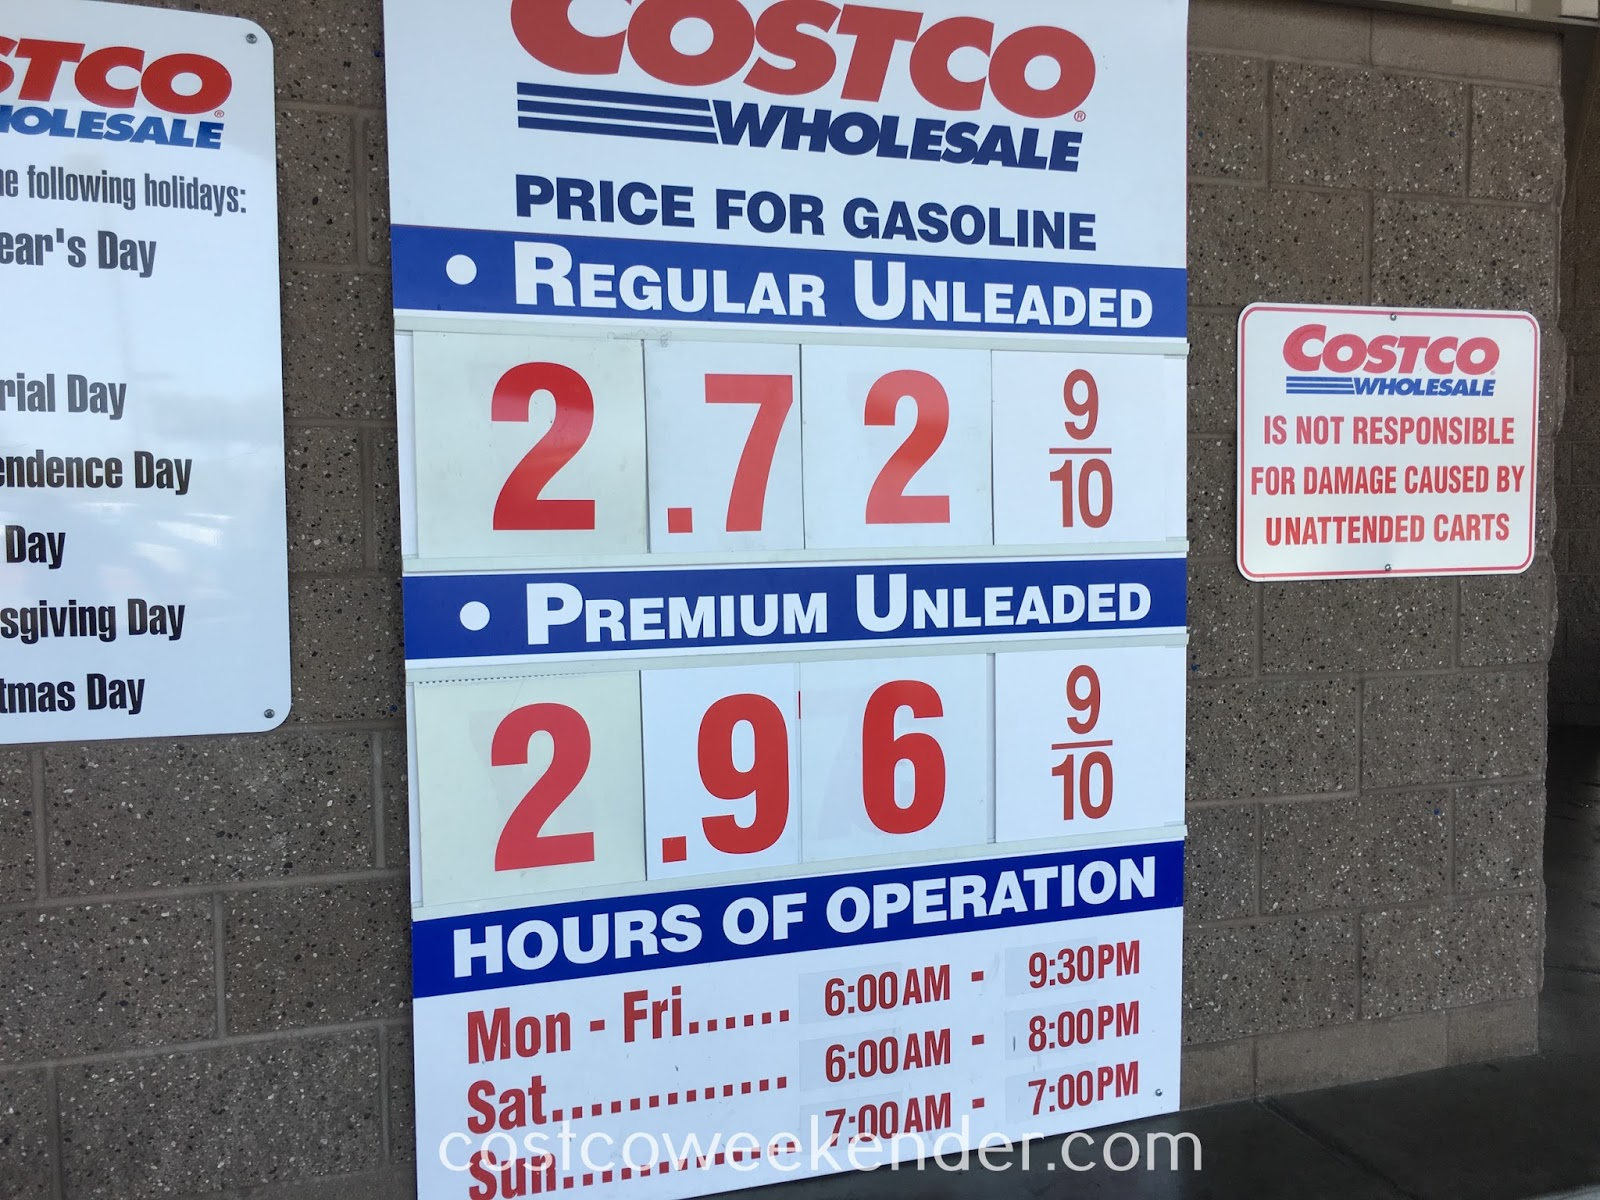 Costco gas for April 9, 2017 at Redwood City, CA